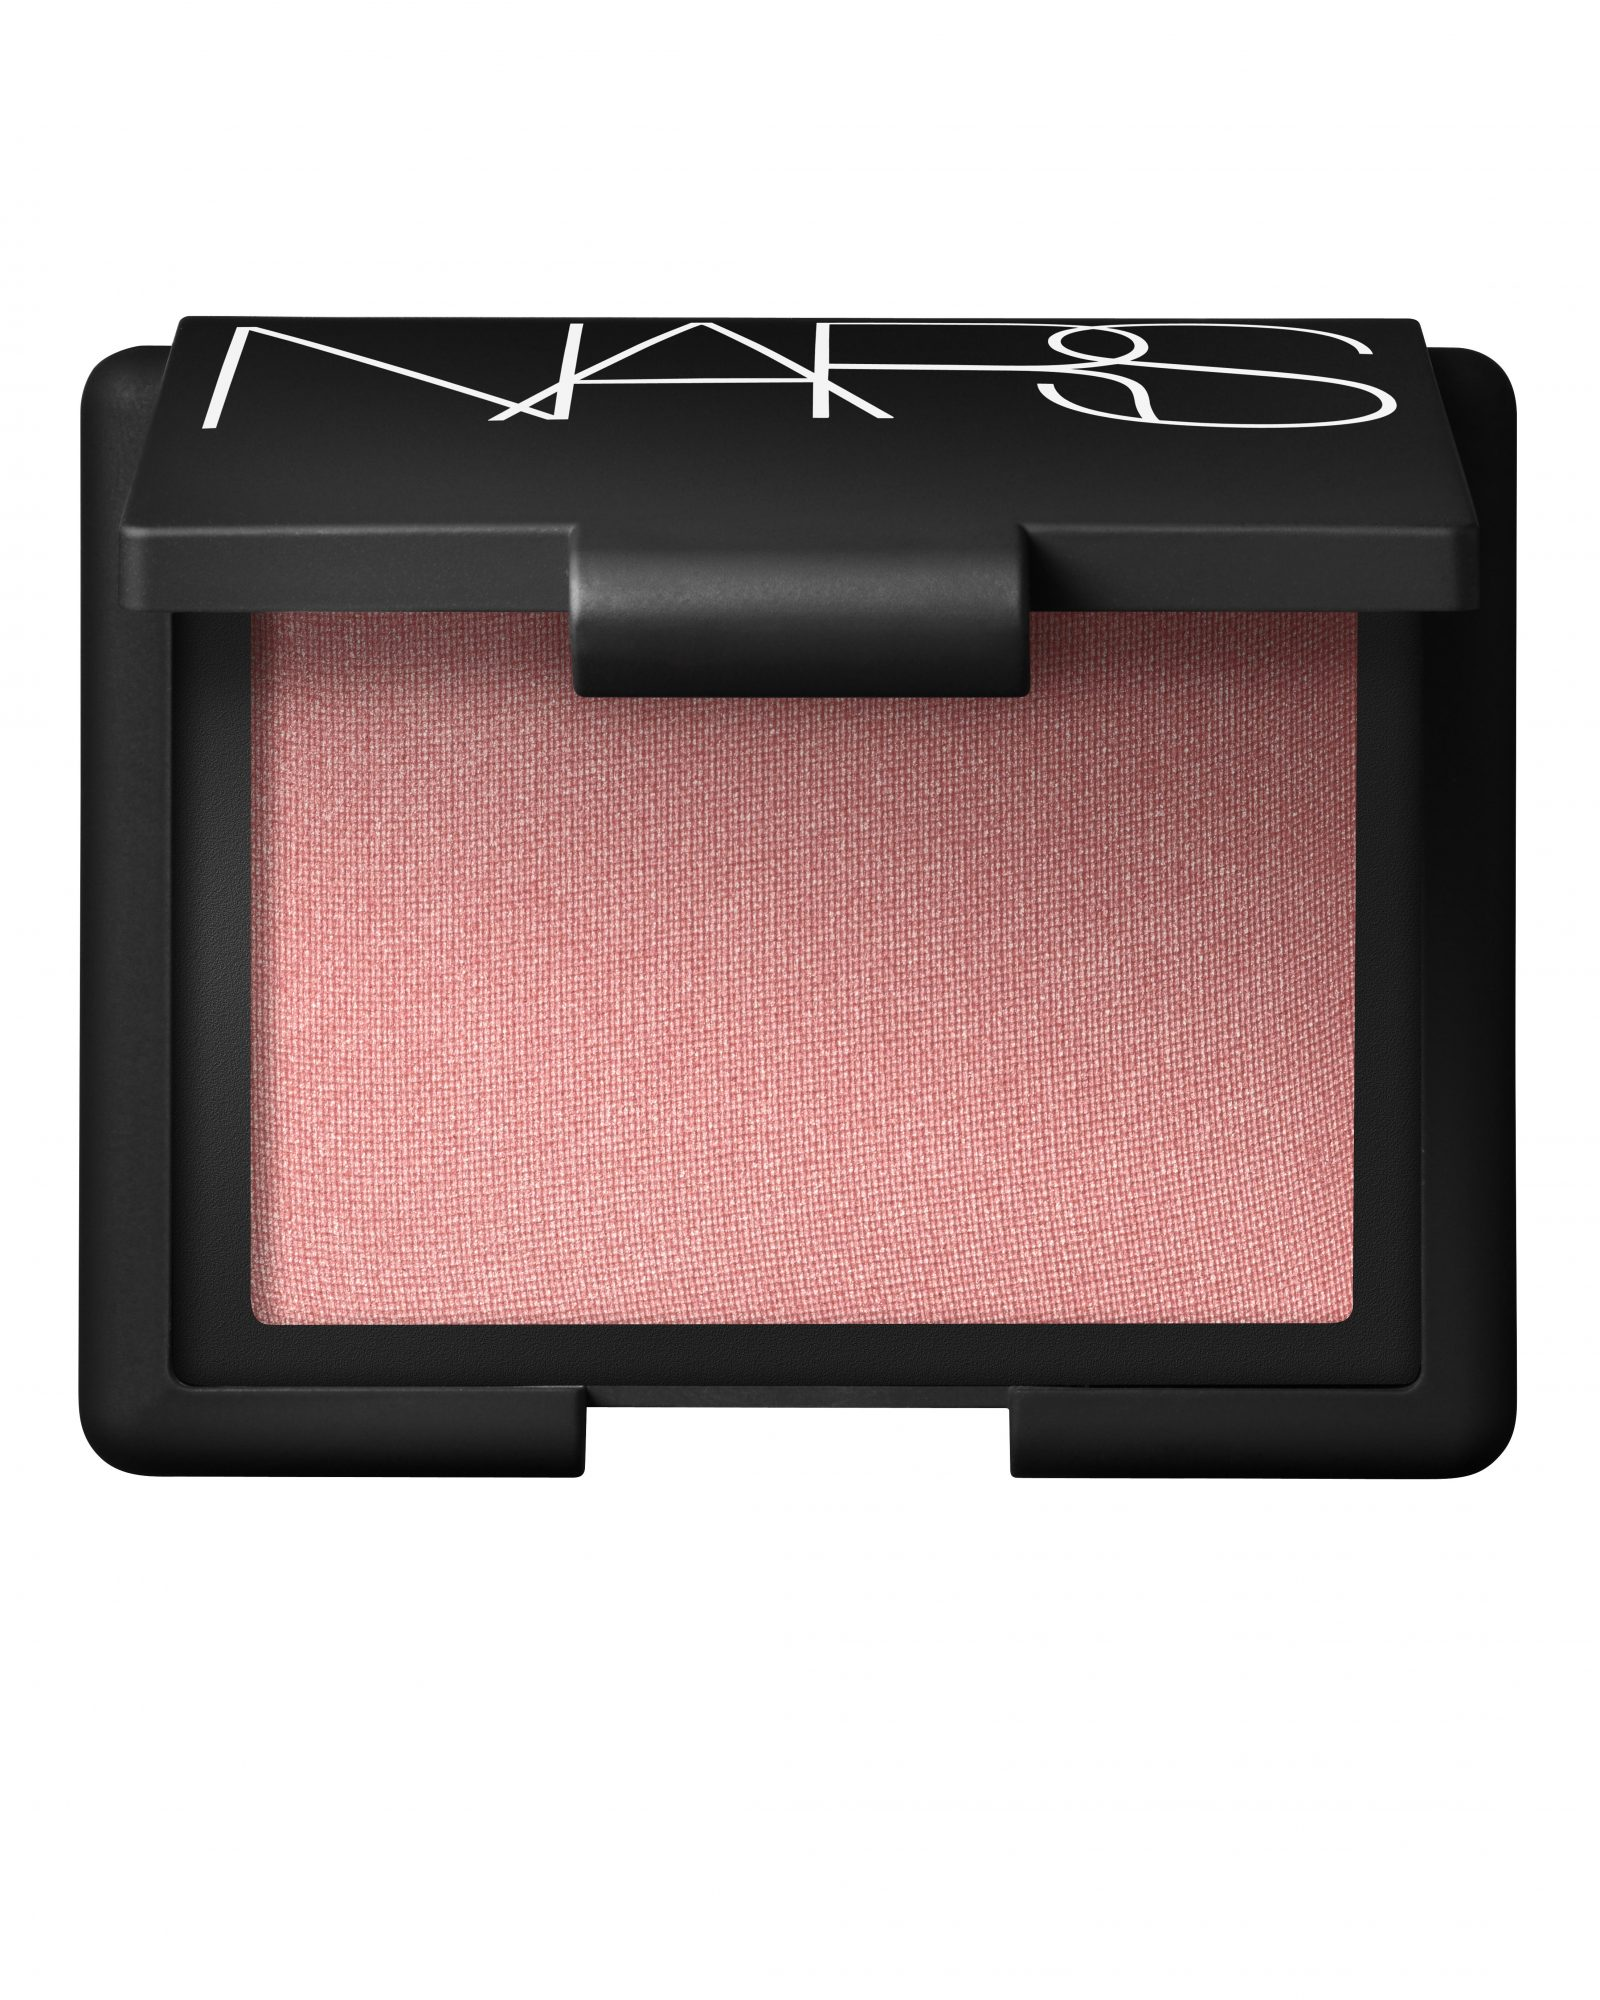 Most Believable Blush